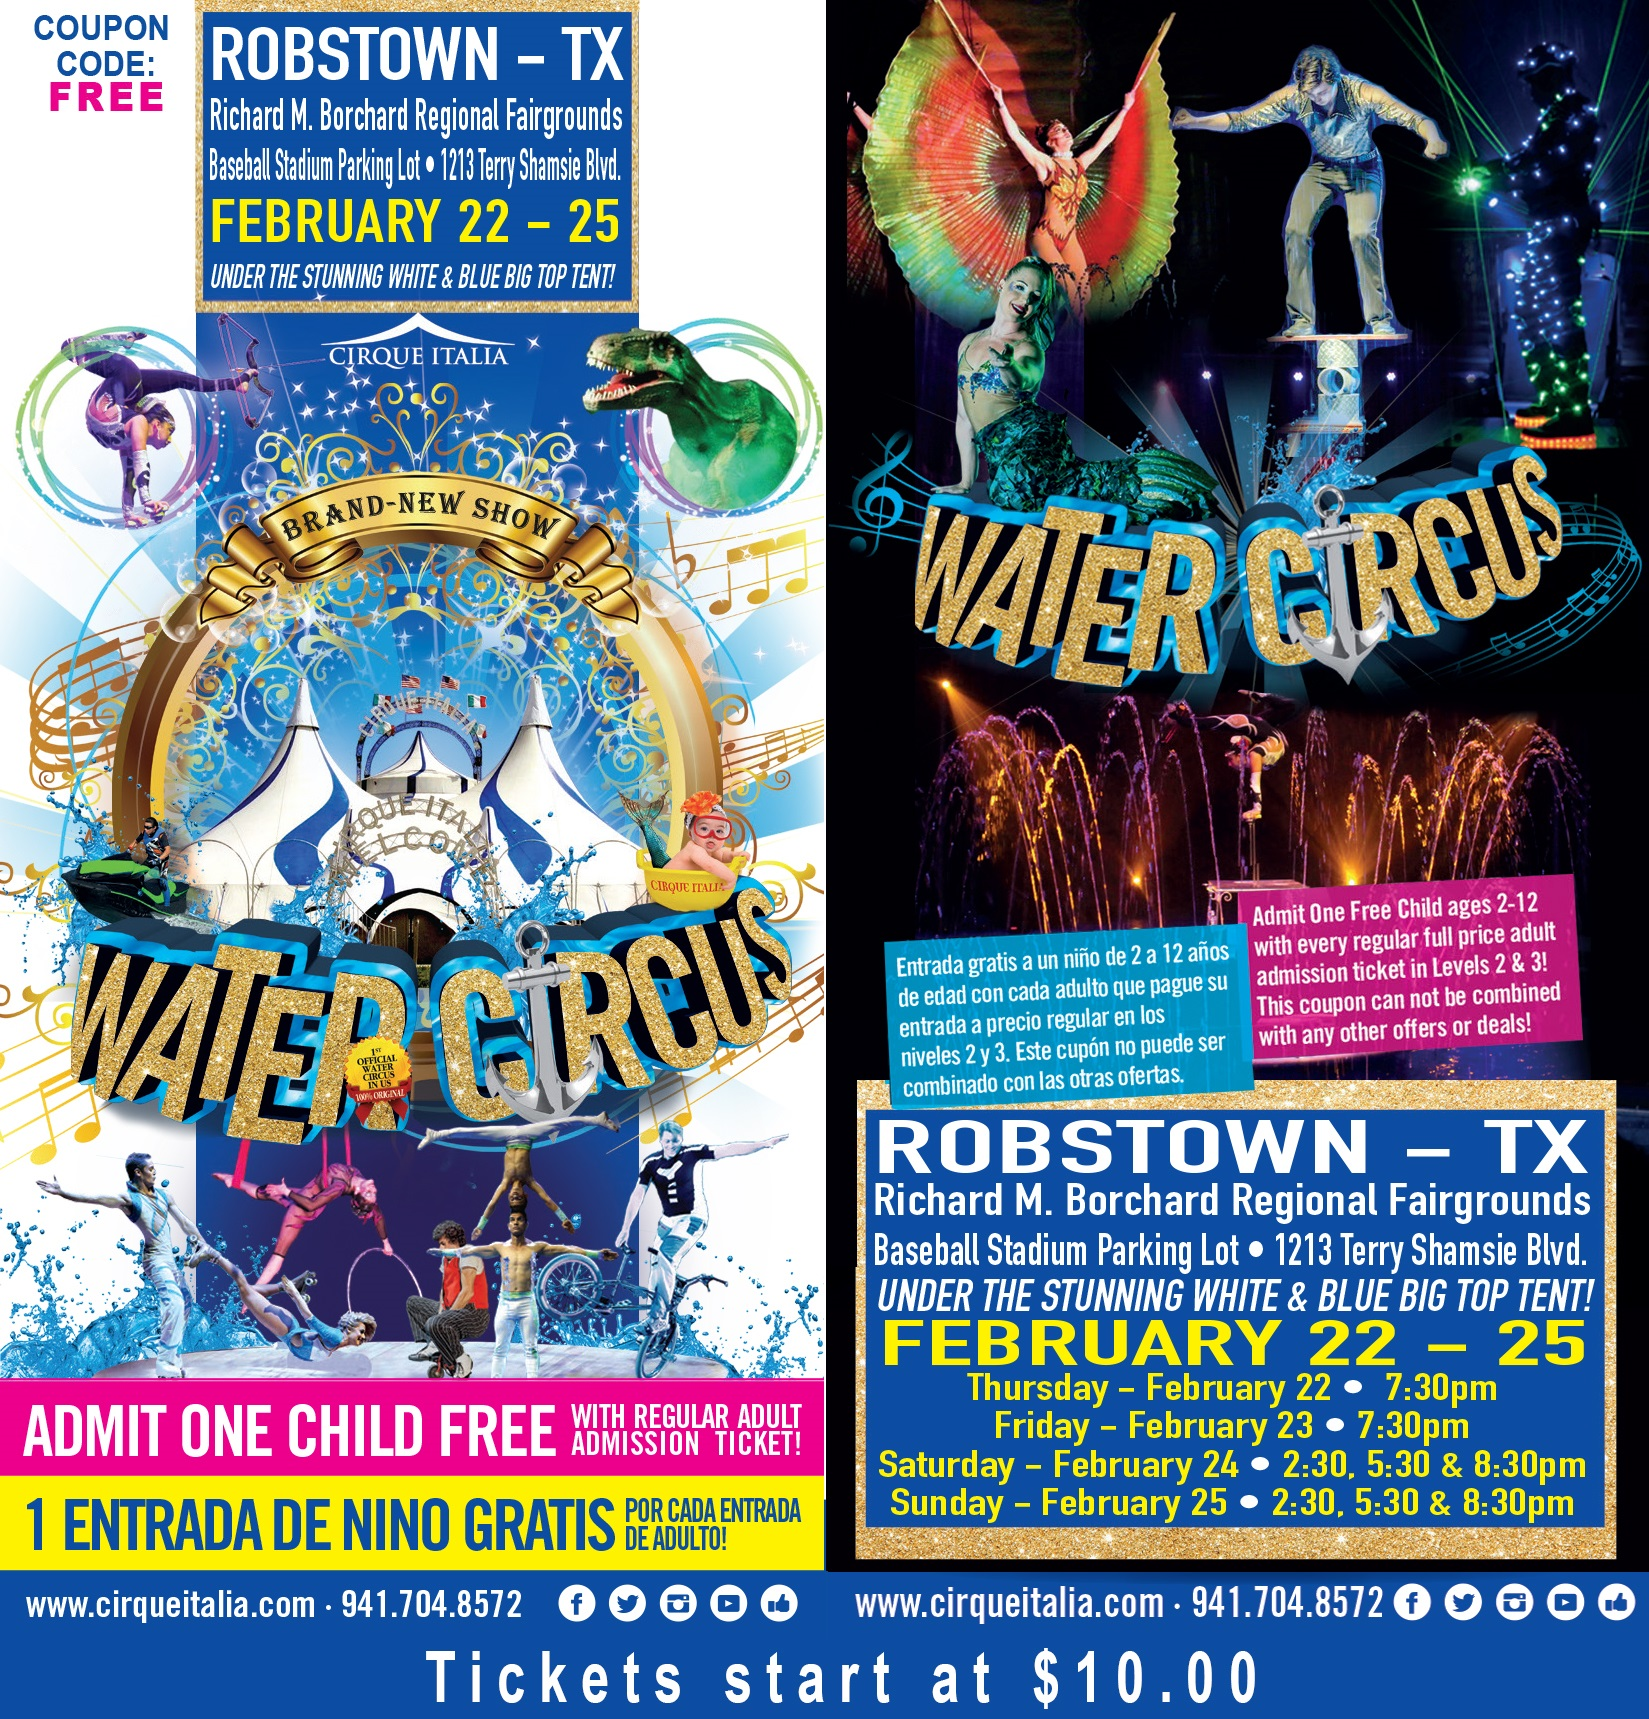 Events: Cirque Italia Water Circus